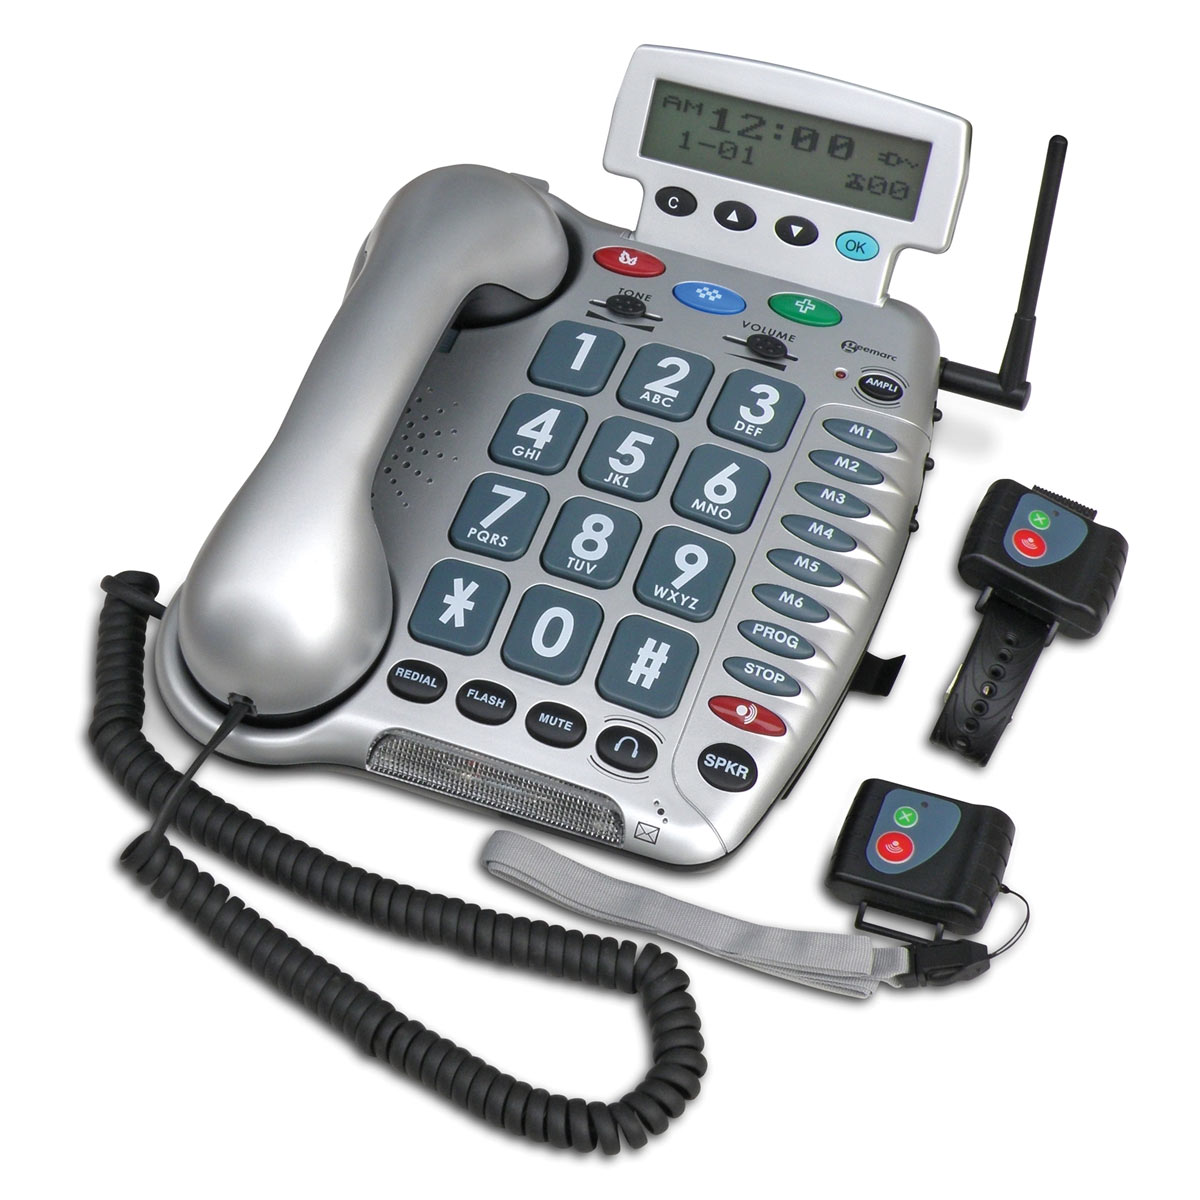 Geemarc Amplified Emergency Connect Telephone - 50dB